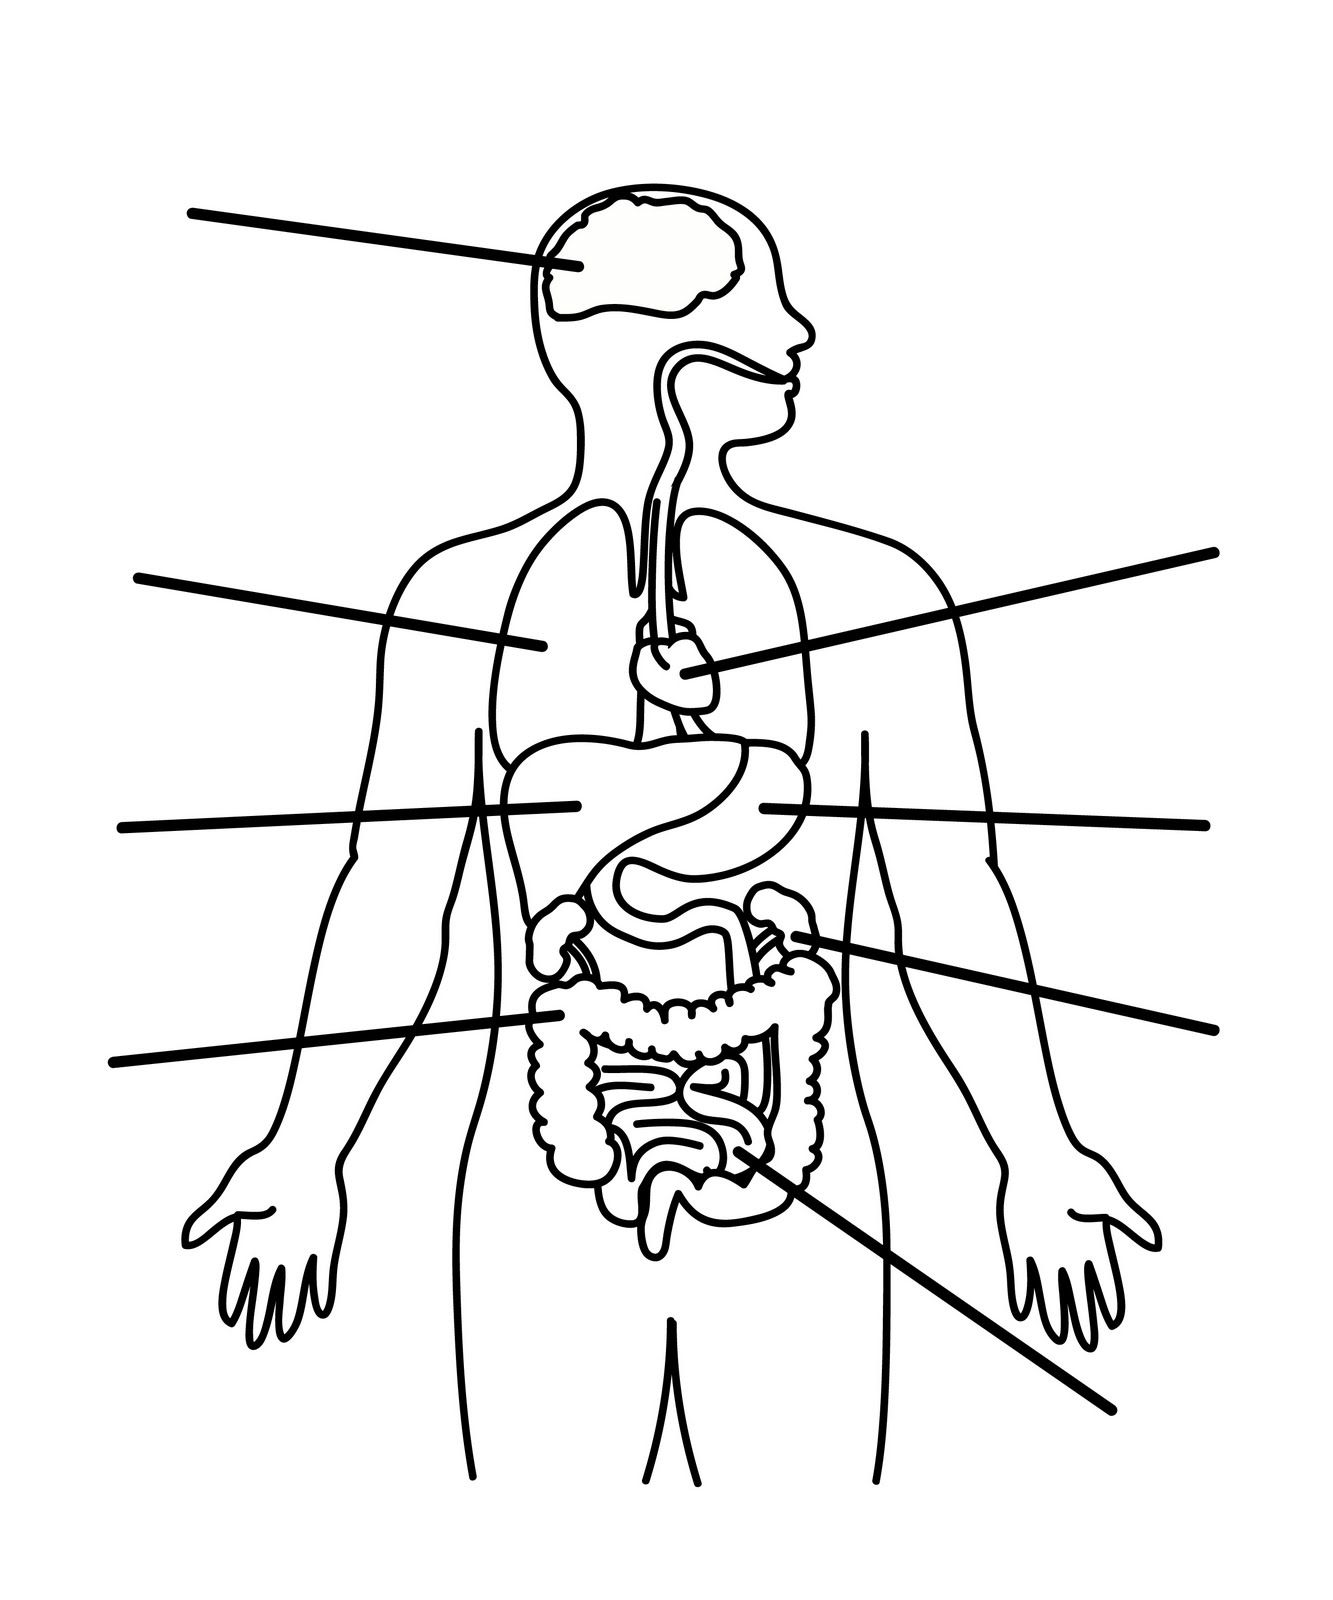 Human Body Organs Worksheets Sketch Coloring Page